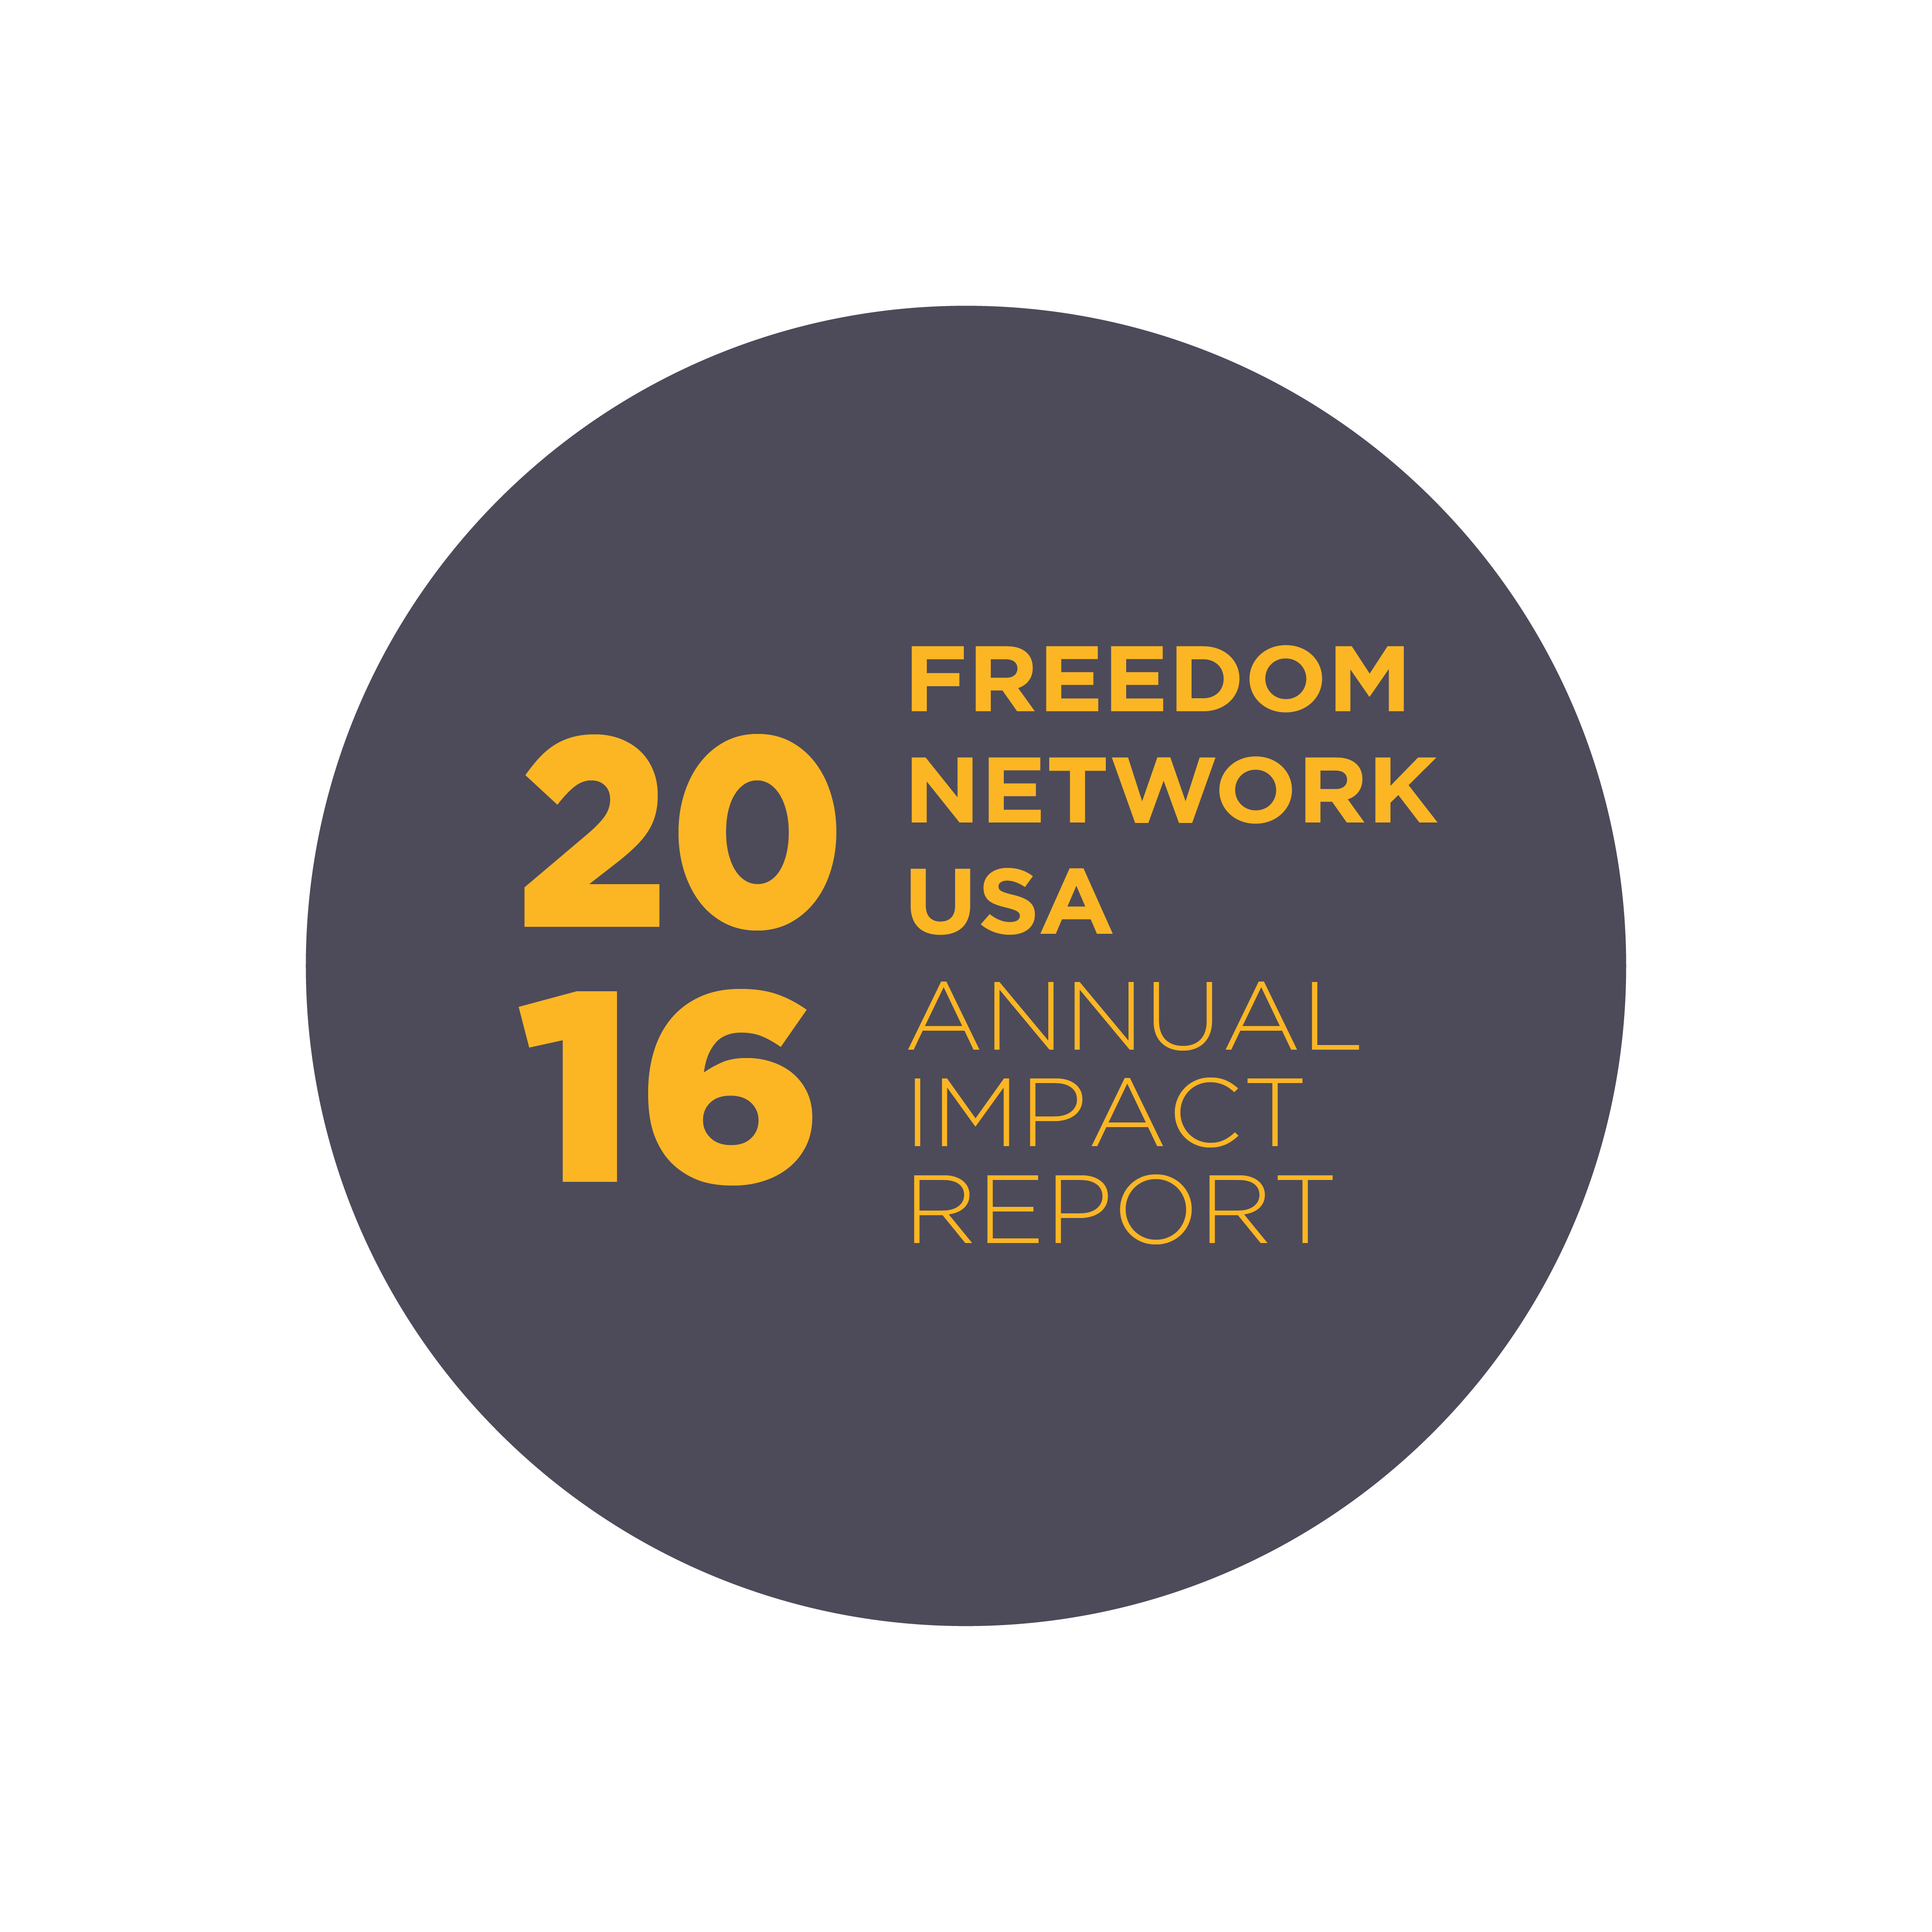 2016 freedom network usa annual impact report